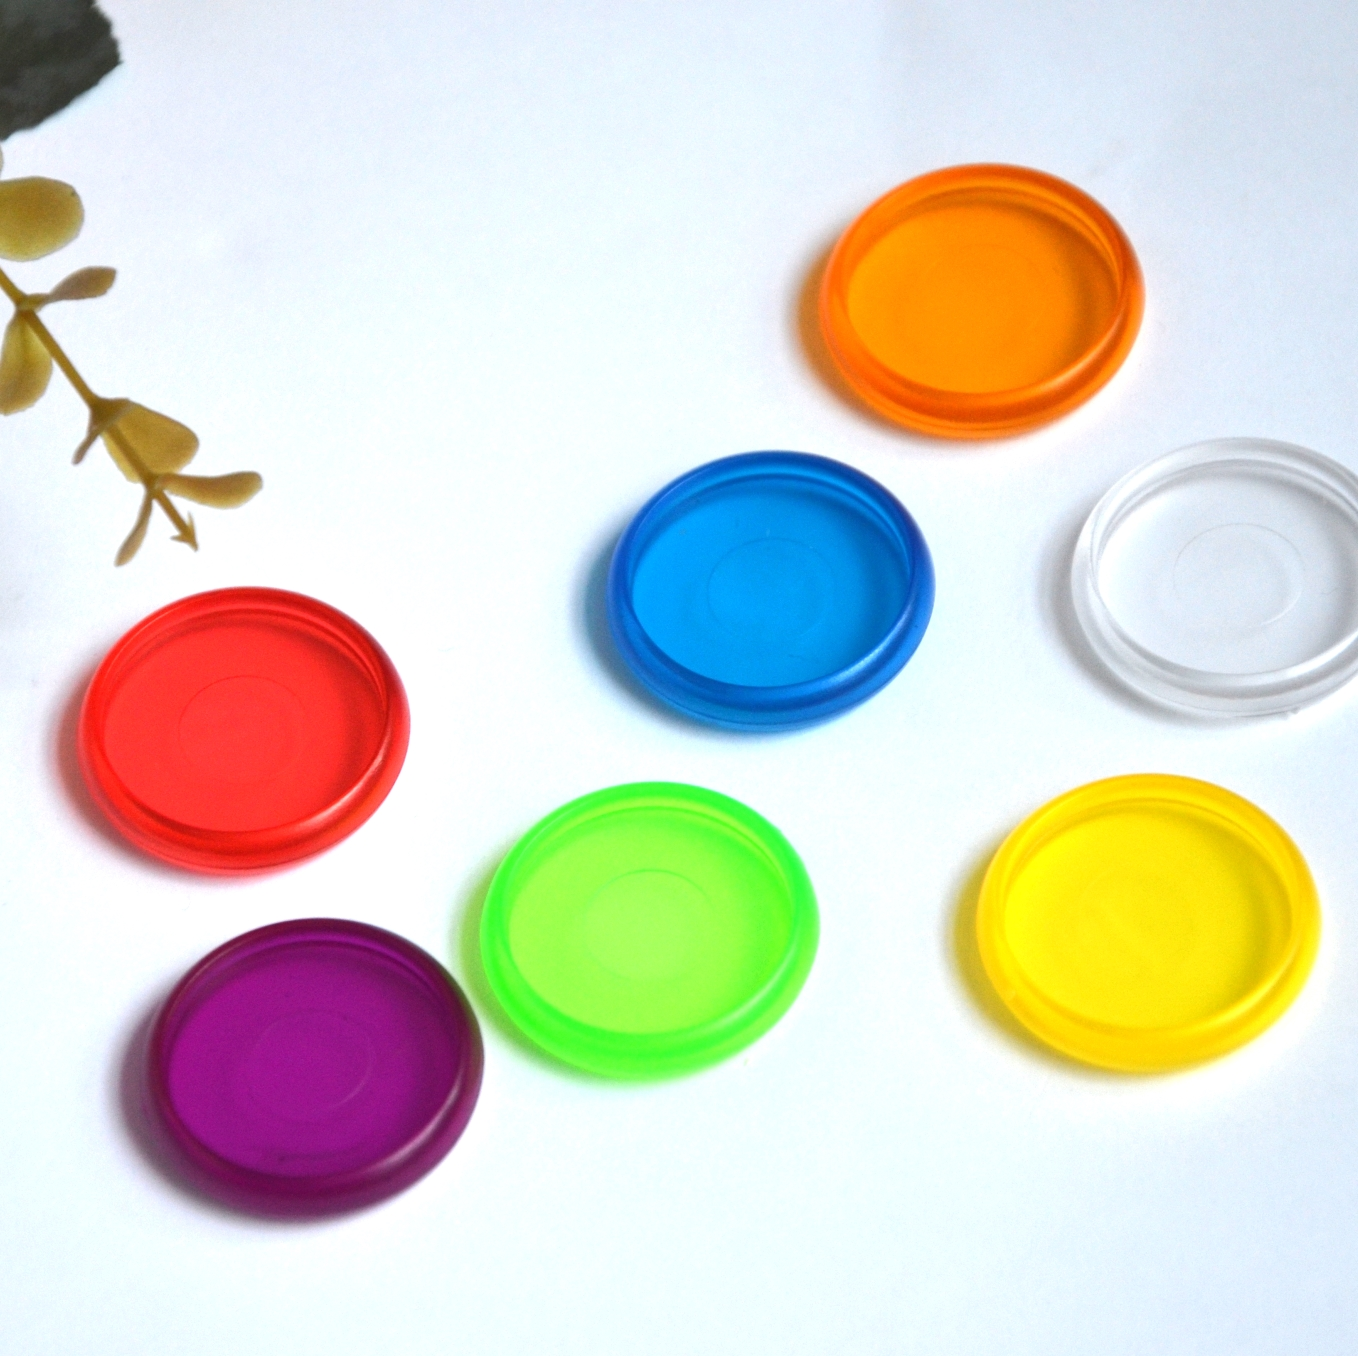 12pcs 28mm Notebook Disc Color Mushroom Hole Plastic Ring Discs Removable Loose-leaf Notebook DIY Hand Book Accessories Ring